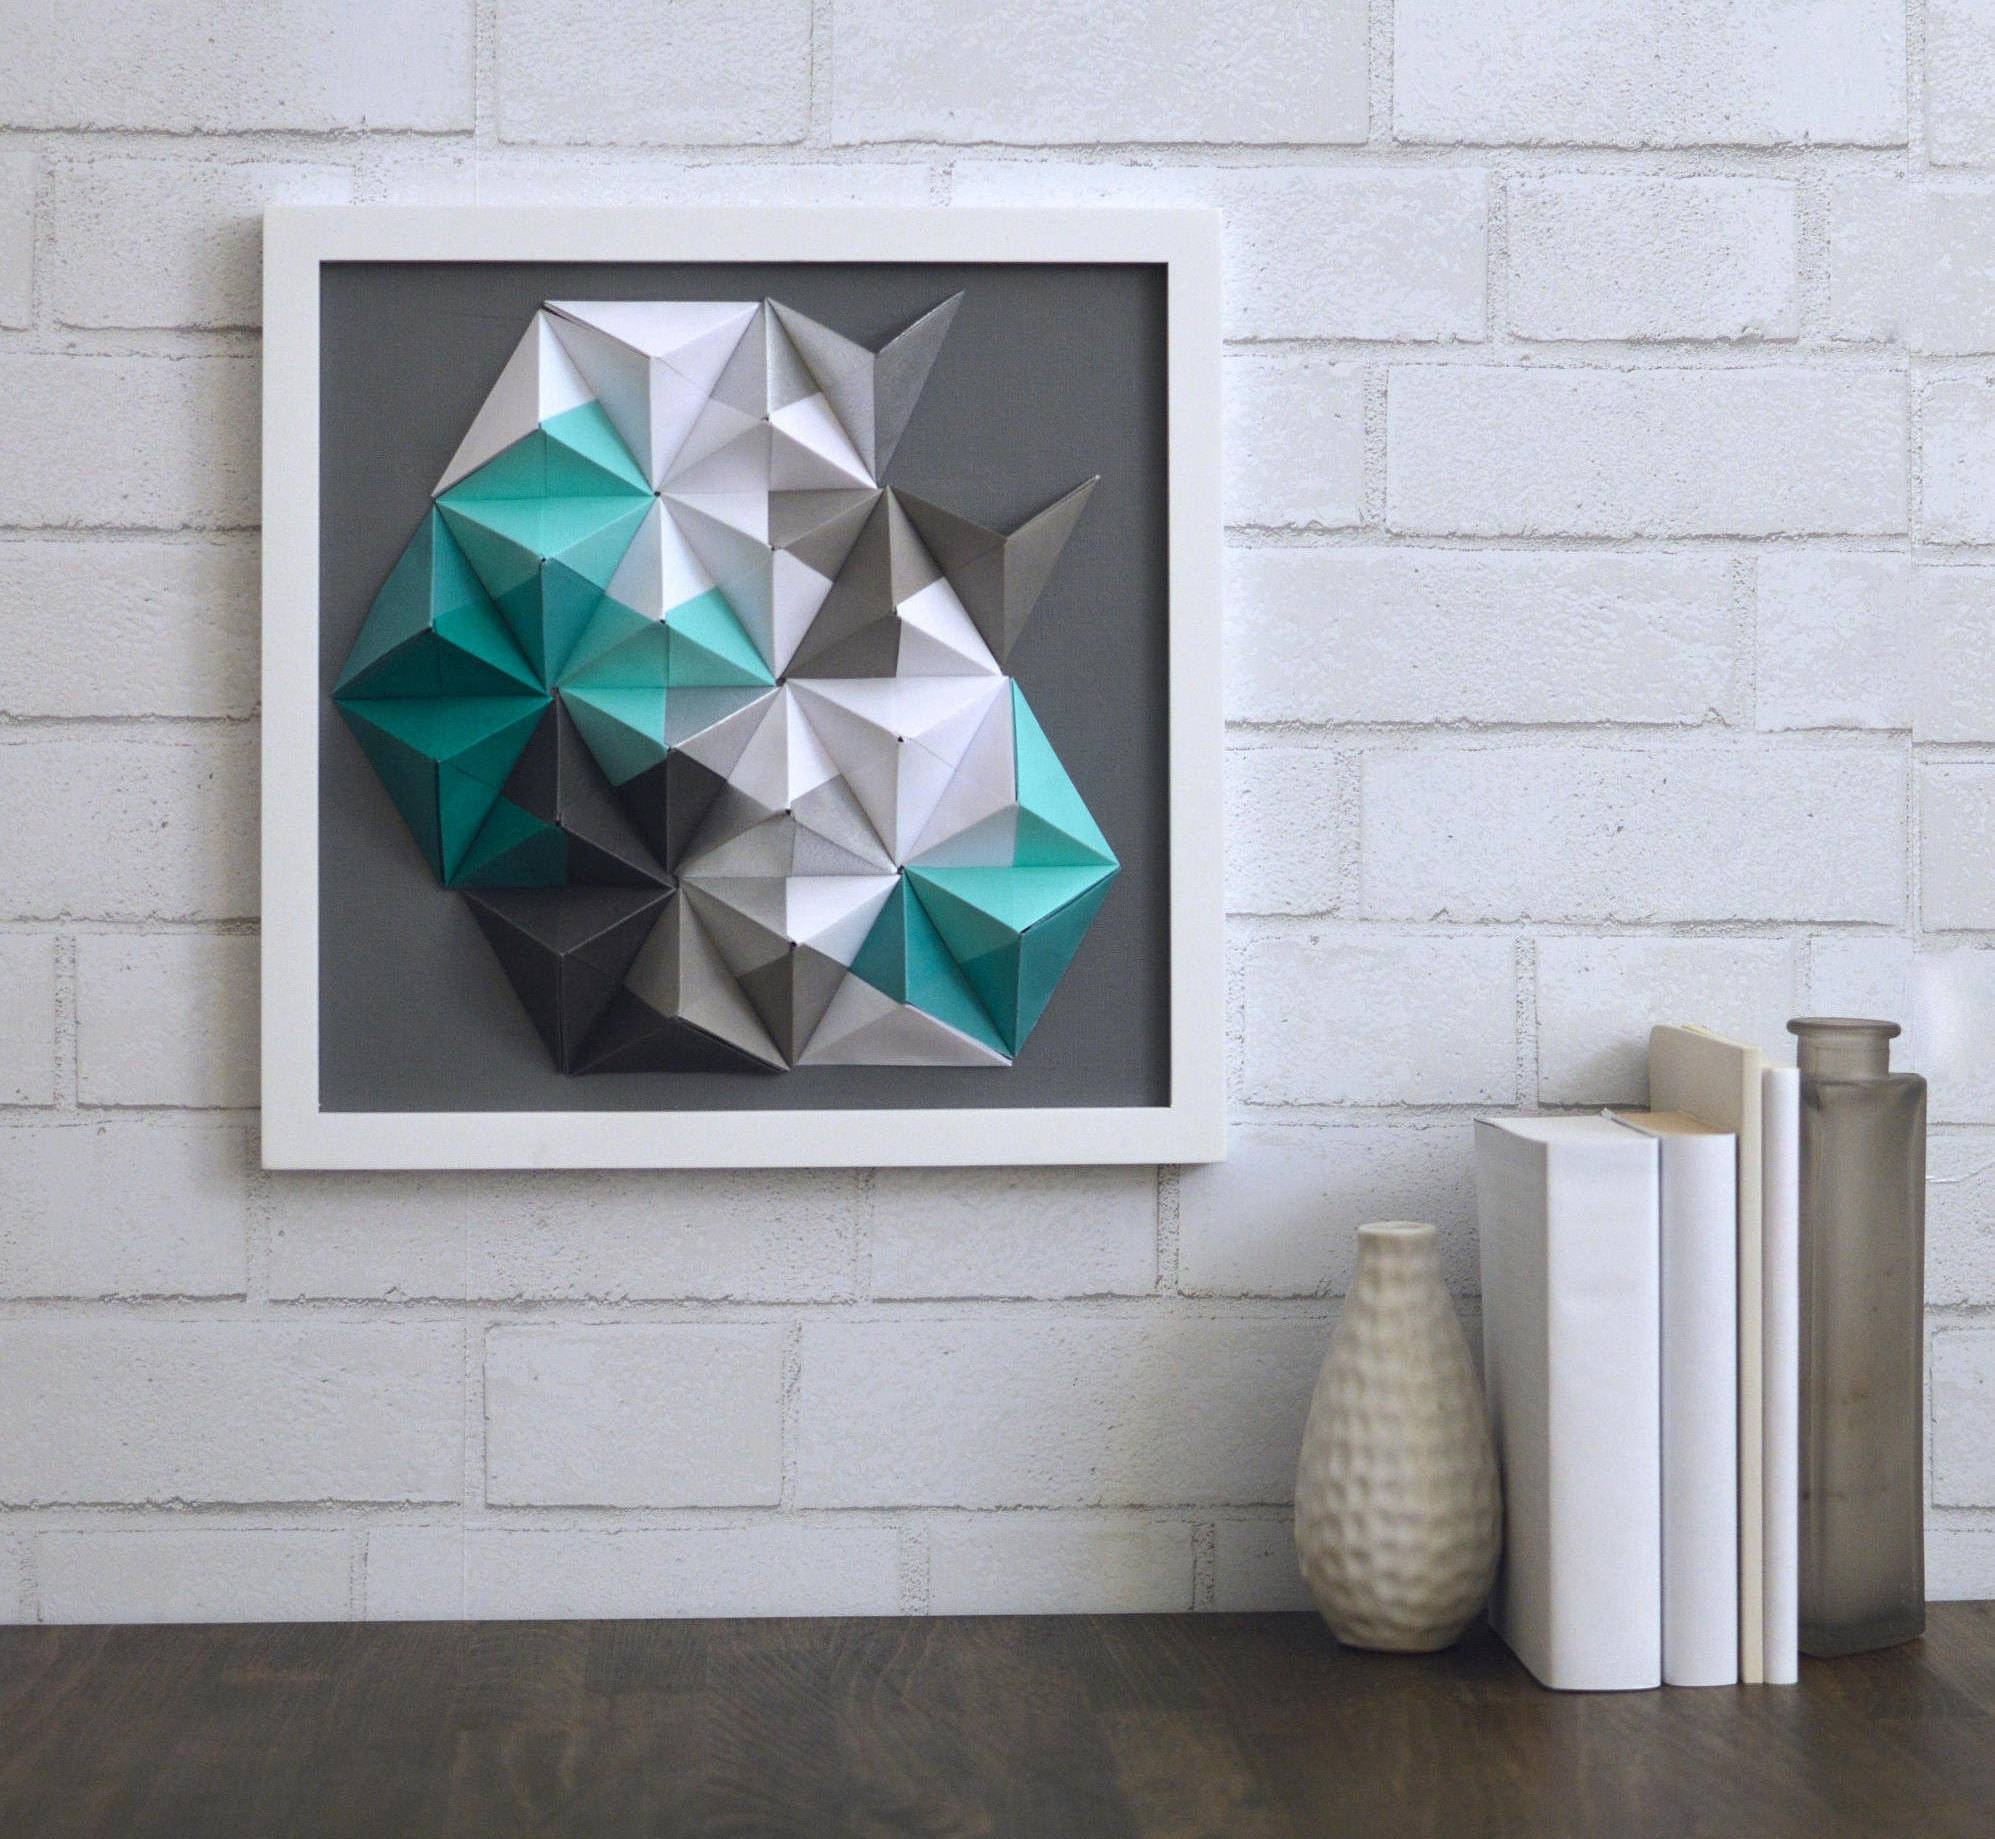 Turquoise Grey Silver & White 12x12 Origami Wall Art Modern In Current 3d Triangle Wall Art (View 16 of 20)